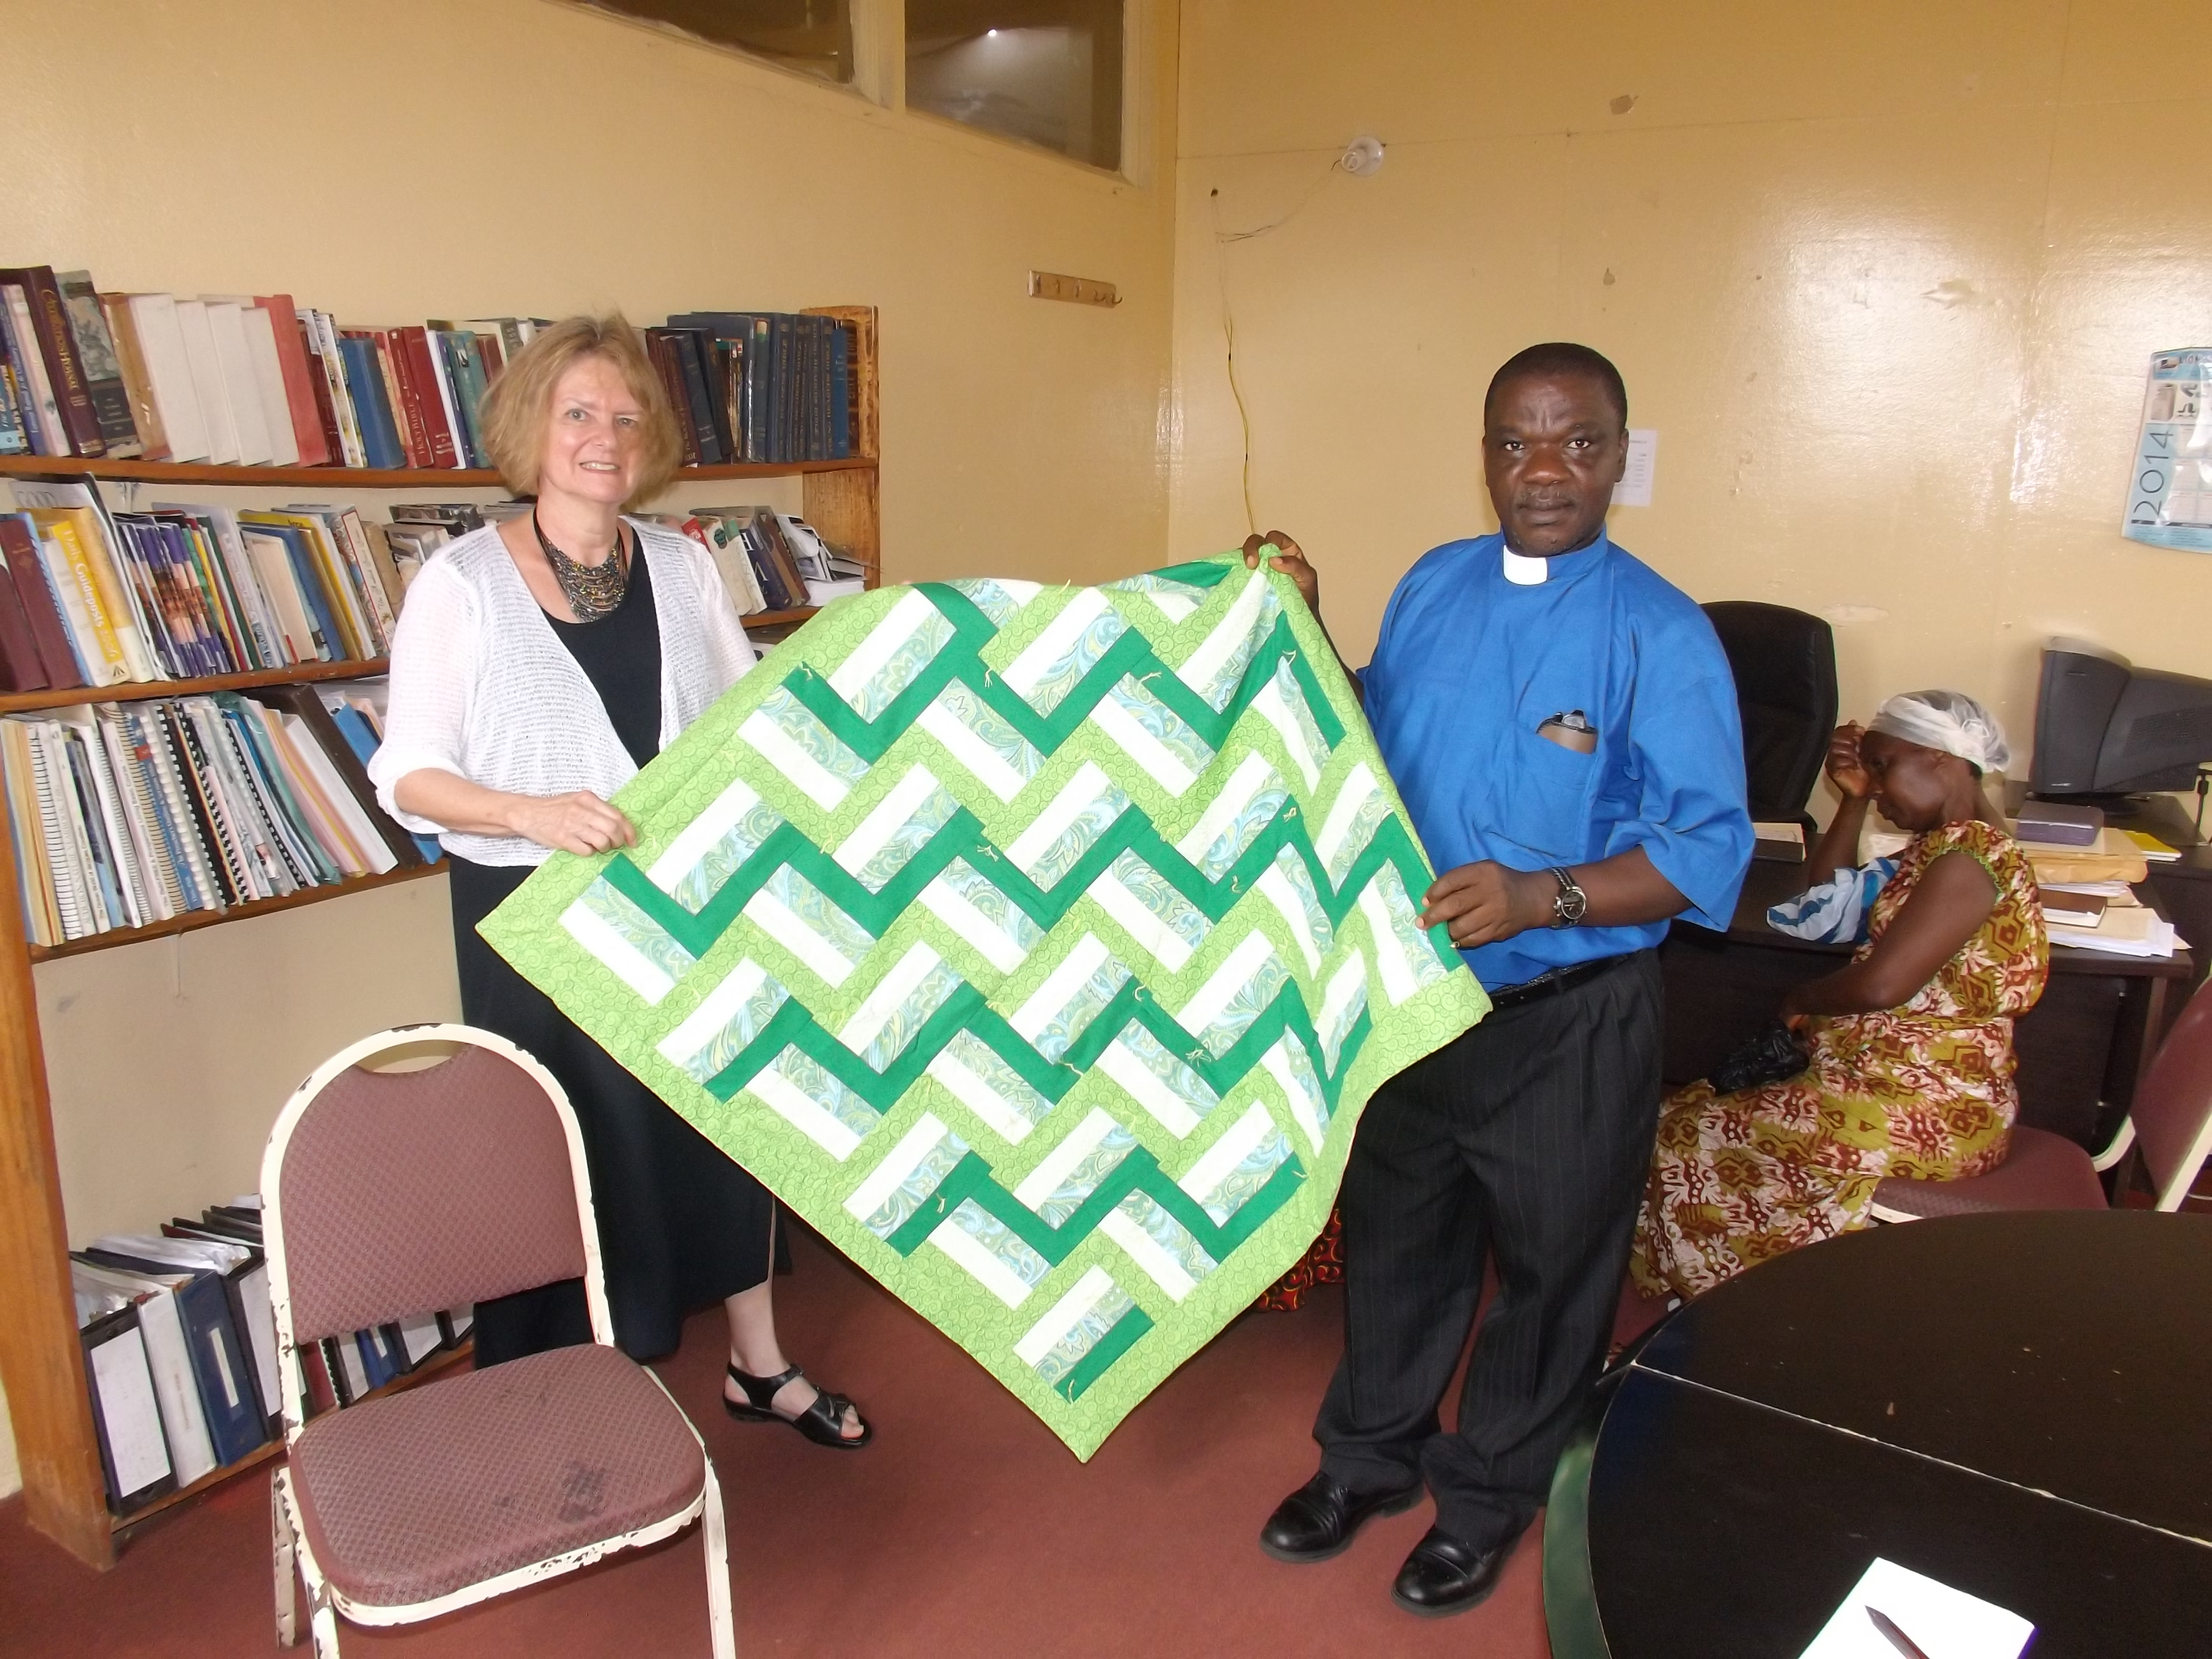 Monrovia District Superintendent receiving the Hope Prayer Quilt